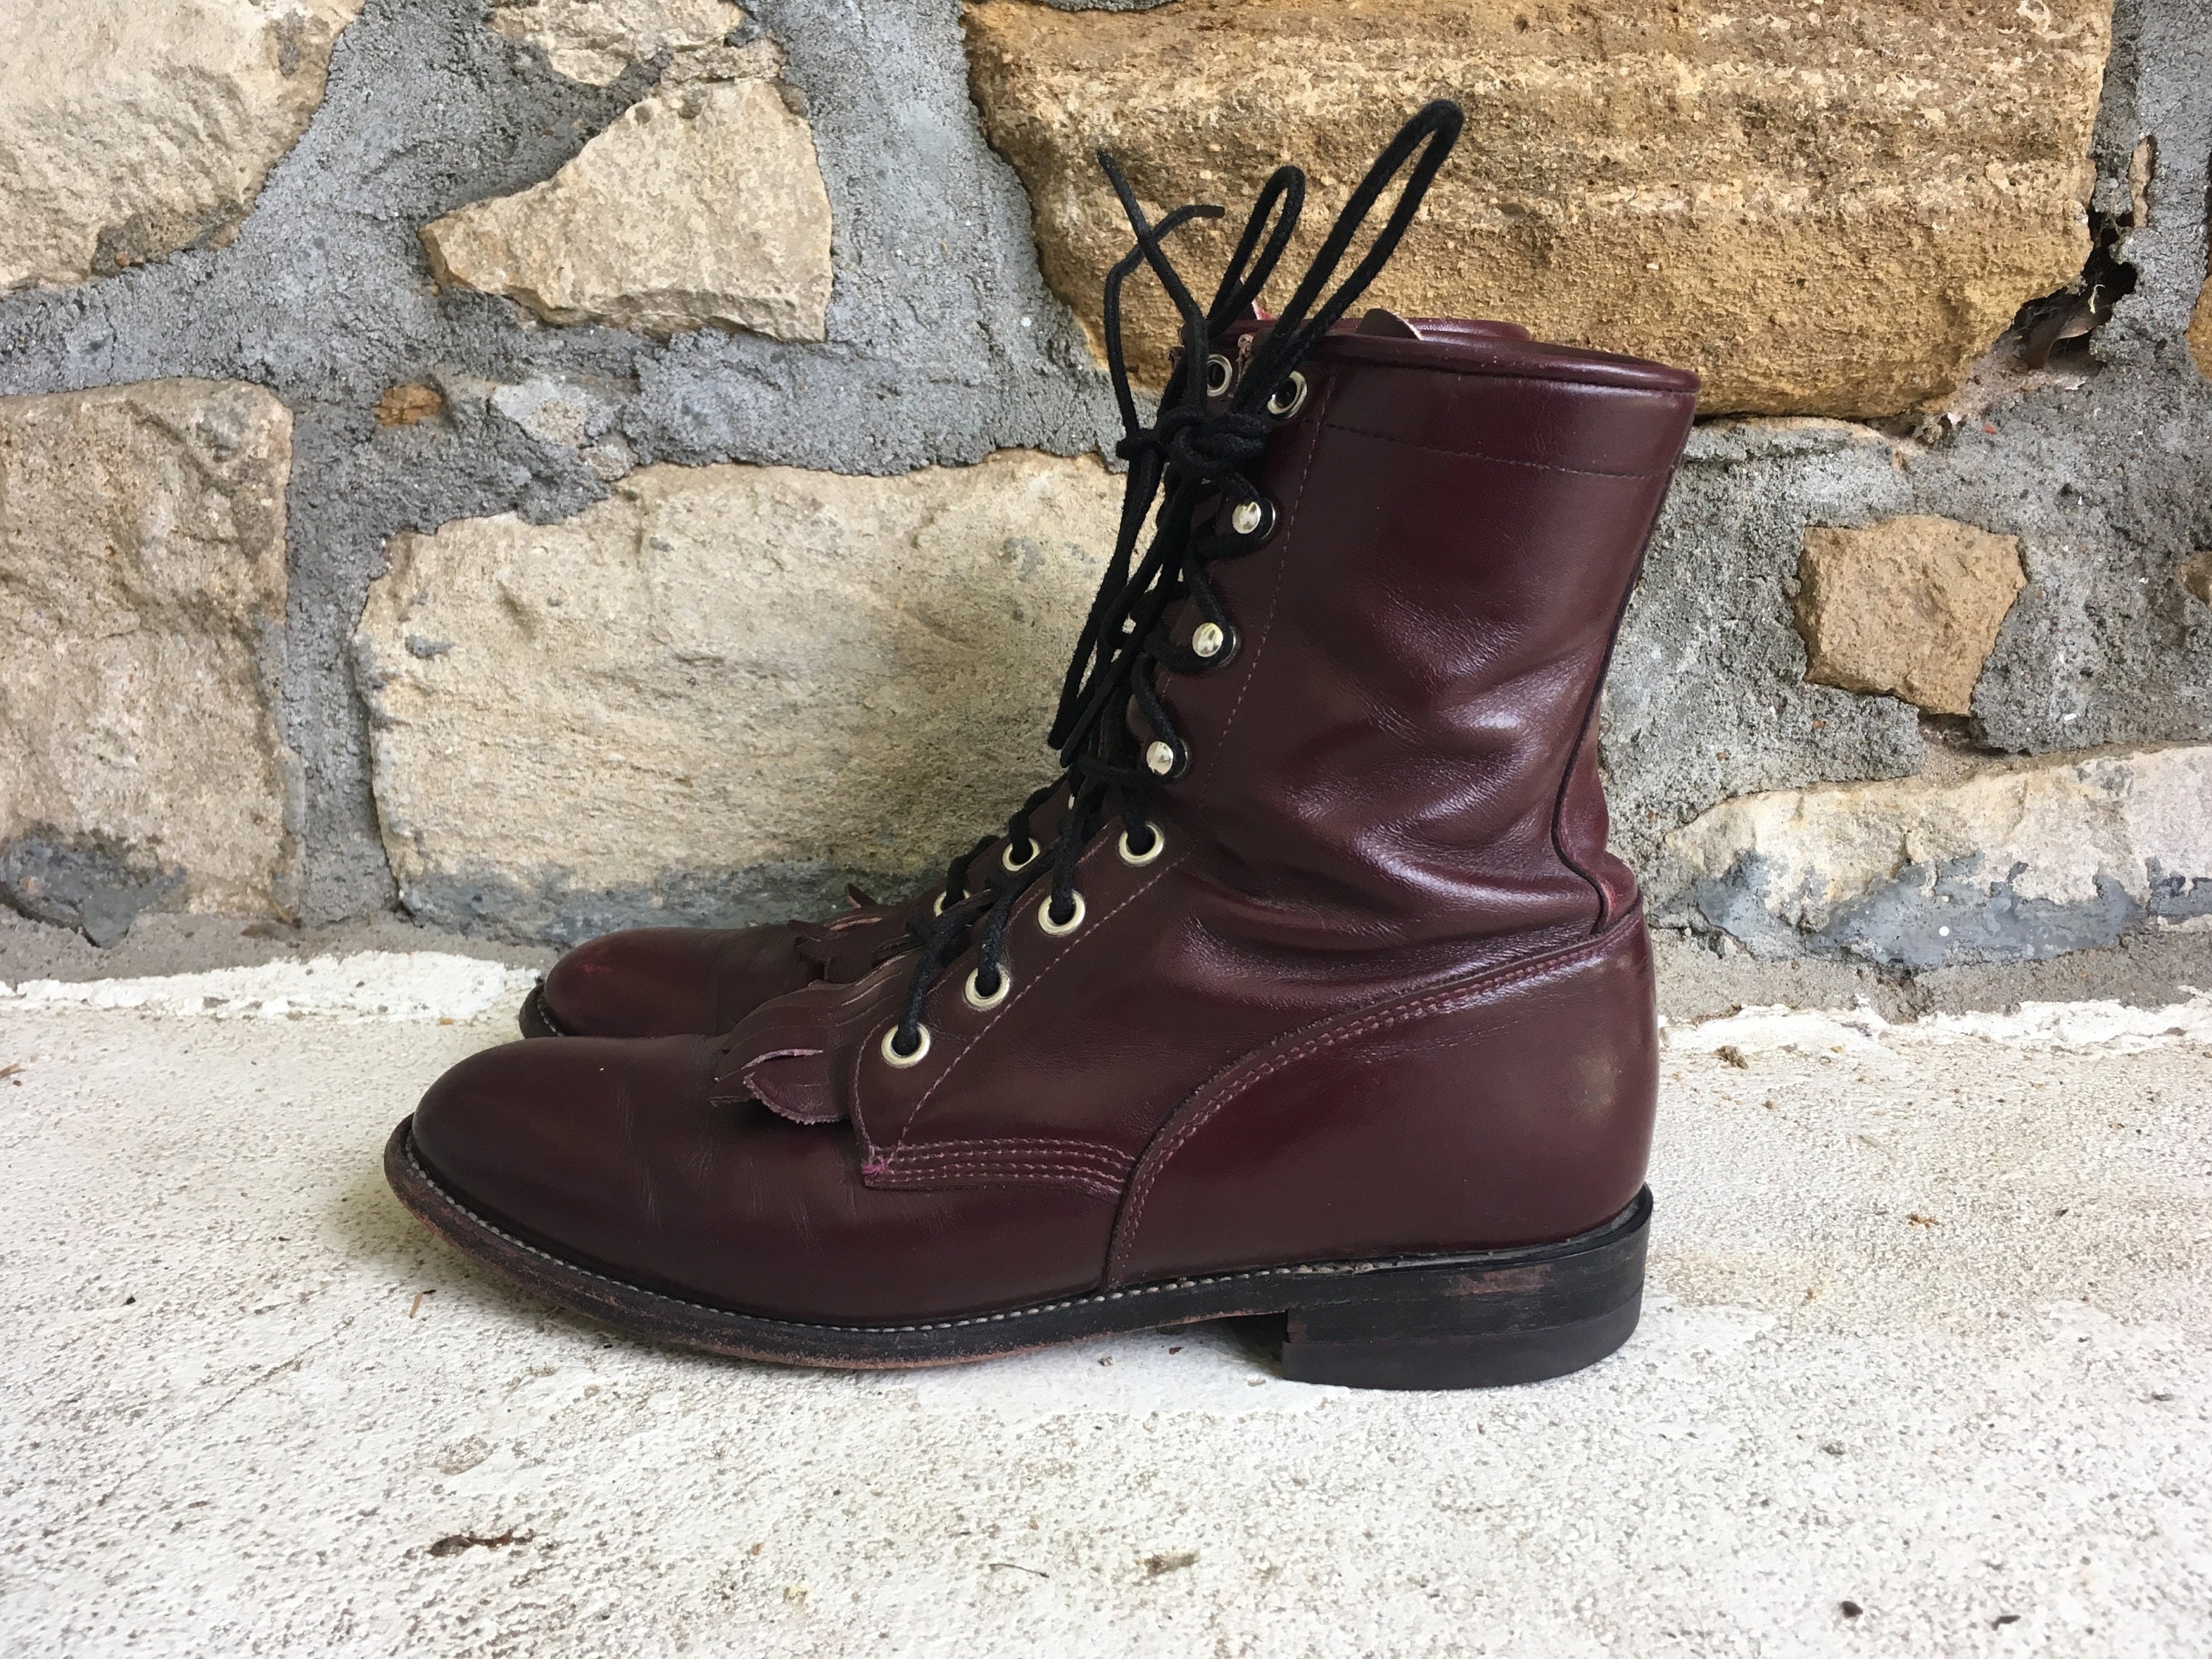 dfe5e4c89aeda Vintage Womens JUSTIN Maroon Red Leather Lace Up ROPER Cowboy BOOTS Size  7.5 8 Granny Hipster Western Justin Work